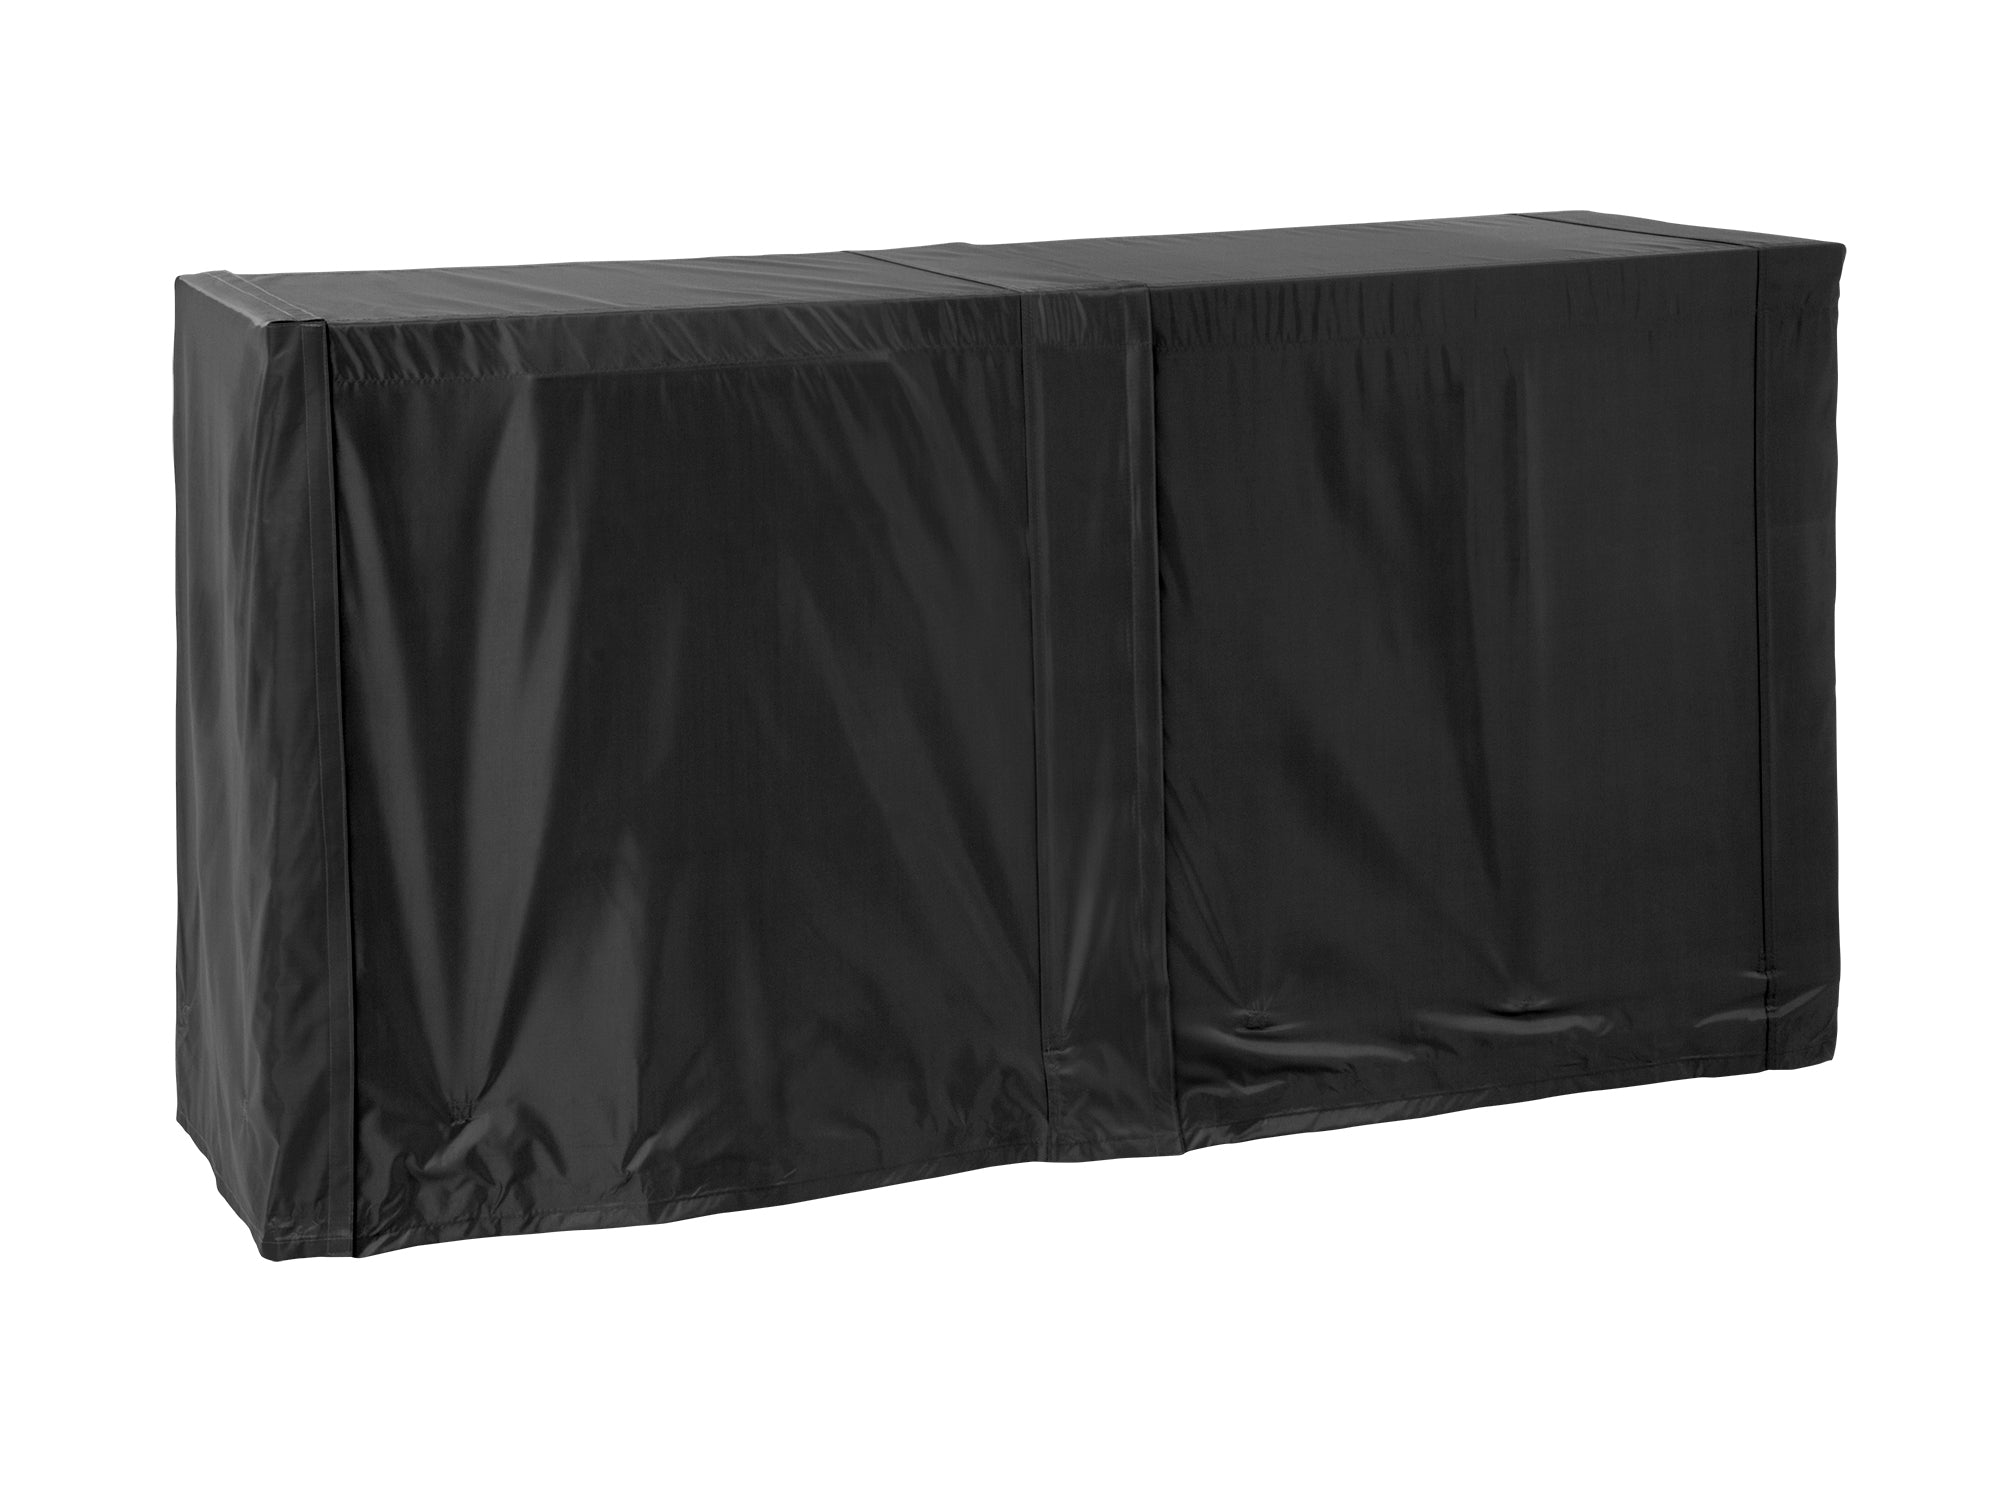 Outdoor Kitchen All-Season Cover Bundle: (2) 32 in. Covers, 45 Degree Corner Cover, 33 in. Insert Grill Cabinet Cover, Right/Left Side Panel Covers